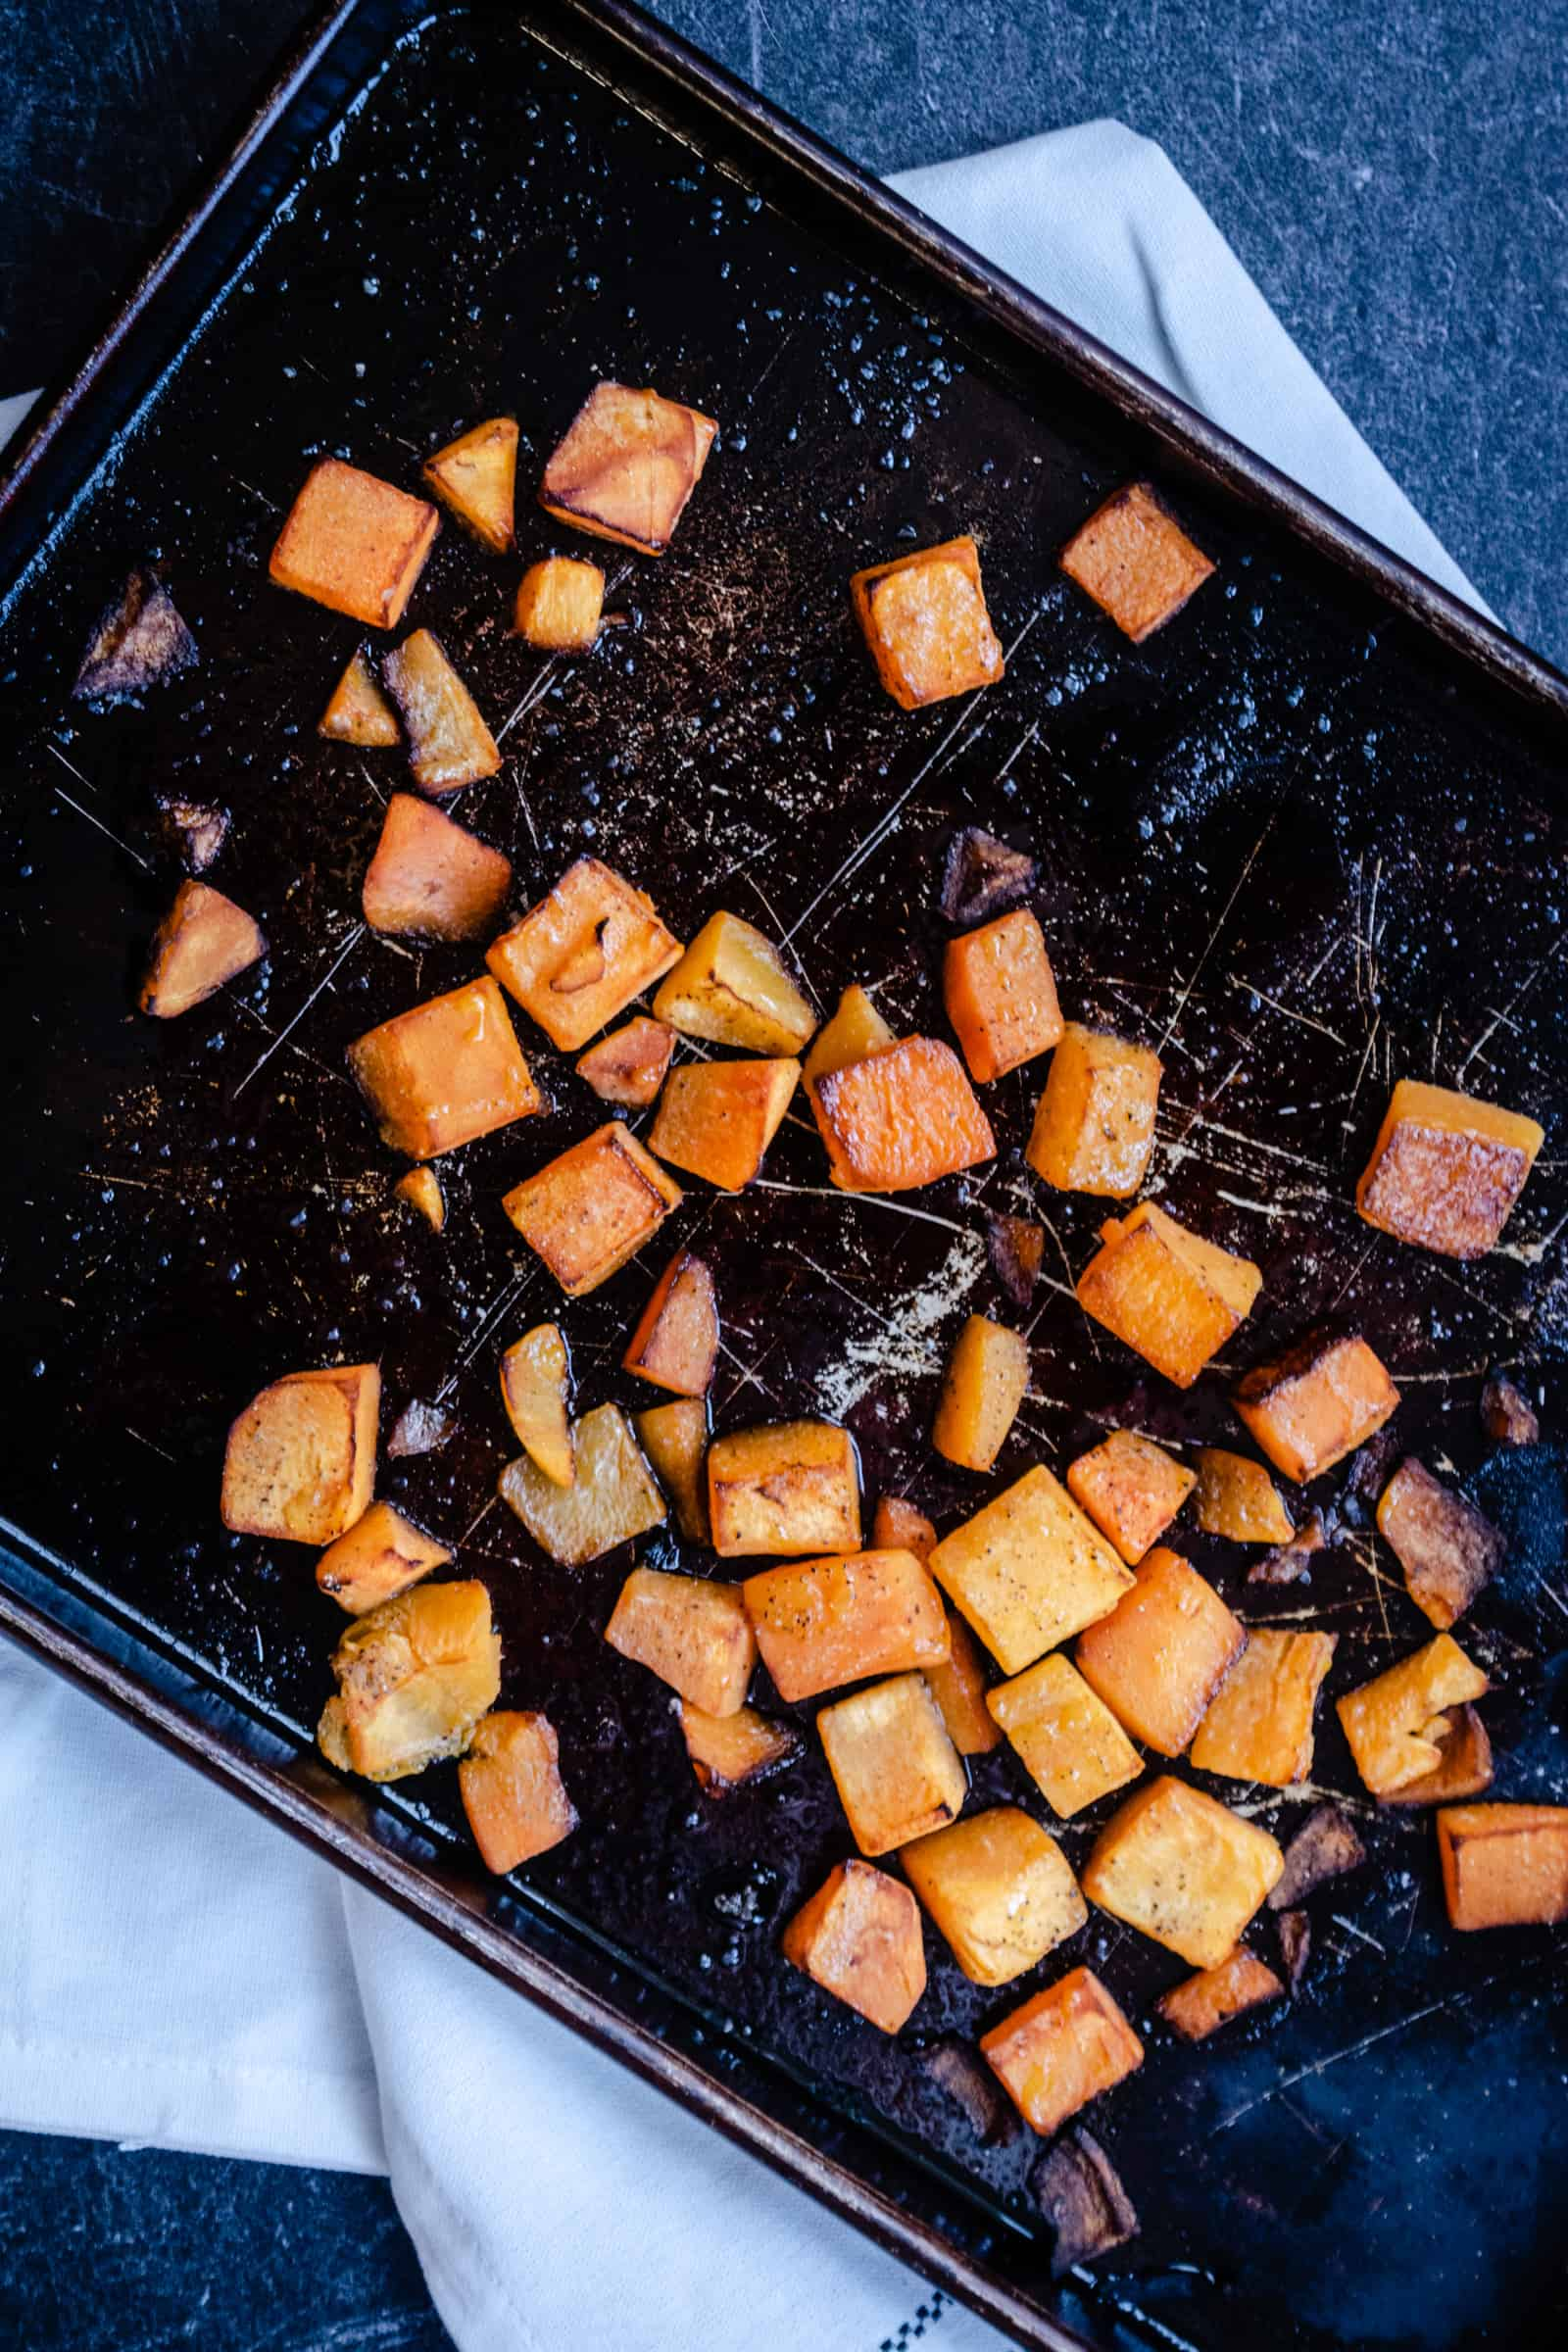 chopped roasted butternut squash on a baking sheet